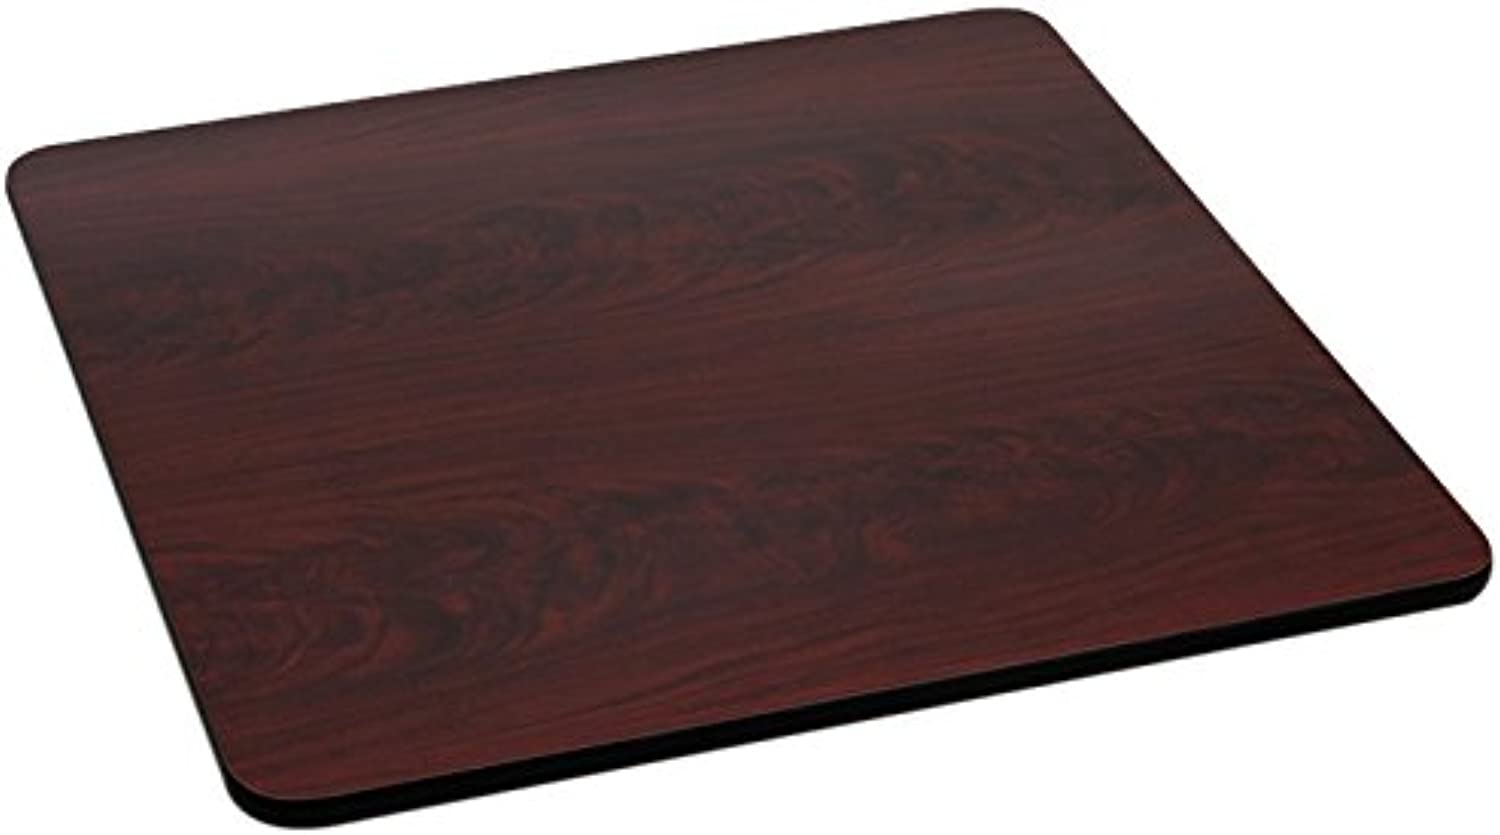 Offex OF-XU-MBT-3030-GG Reversible Square Laminate Table Top, 30-Inch, Black Mahogany